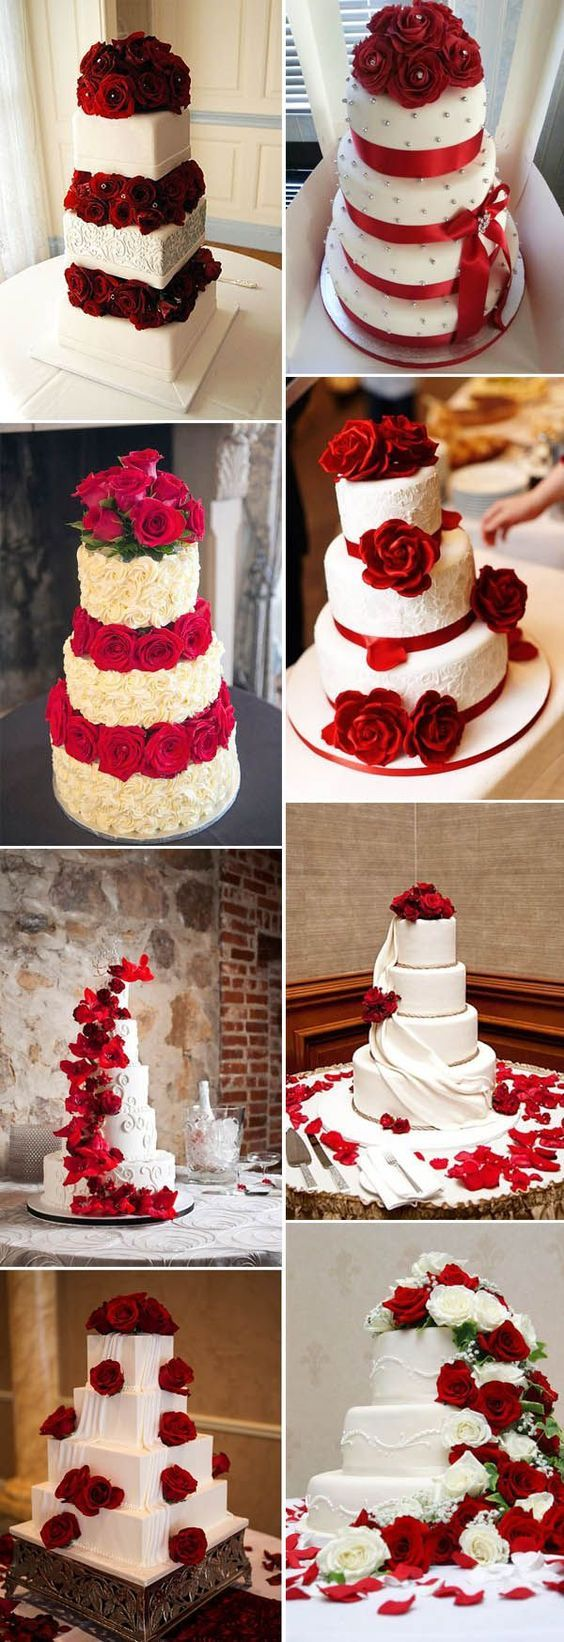 inspirational classic red and white wedding ideas white wedding